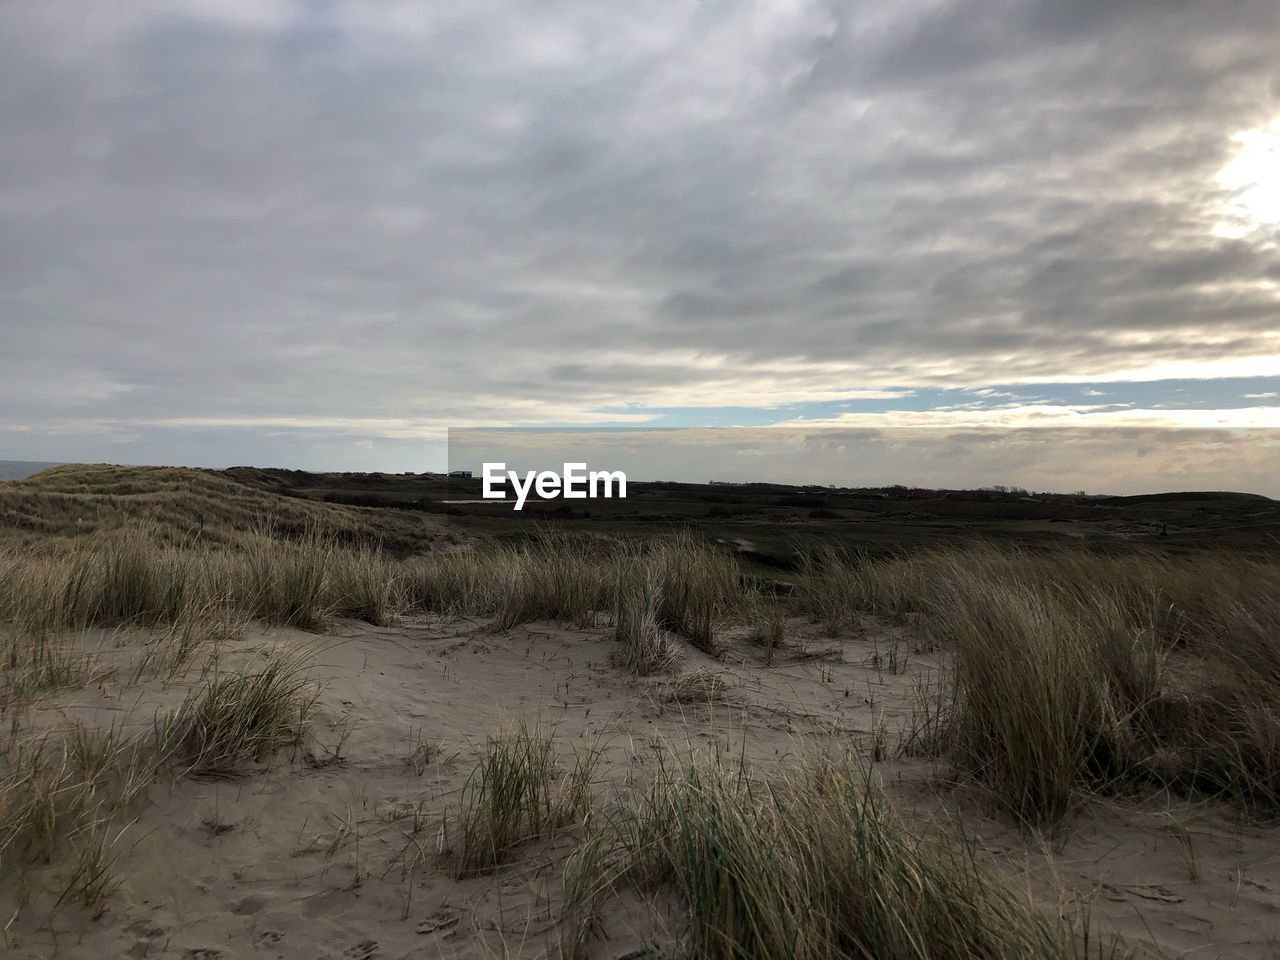 cloud - sky, sky, land, tranquility, environment, tranquil scene, plant, grass, landscape, beauty in nature, nature, scenics - nature, field, no people, non-urban scene, horizon, day, outdoors, horizon over land, marram grass